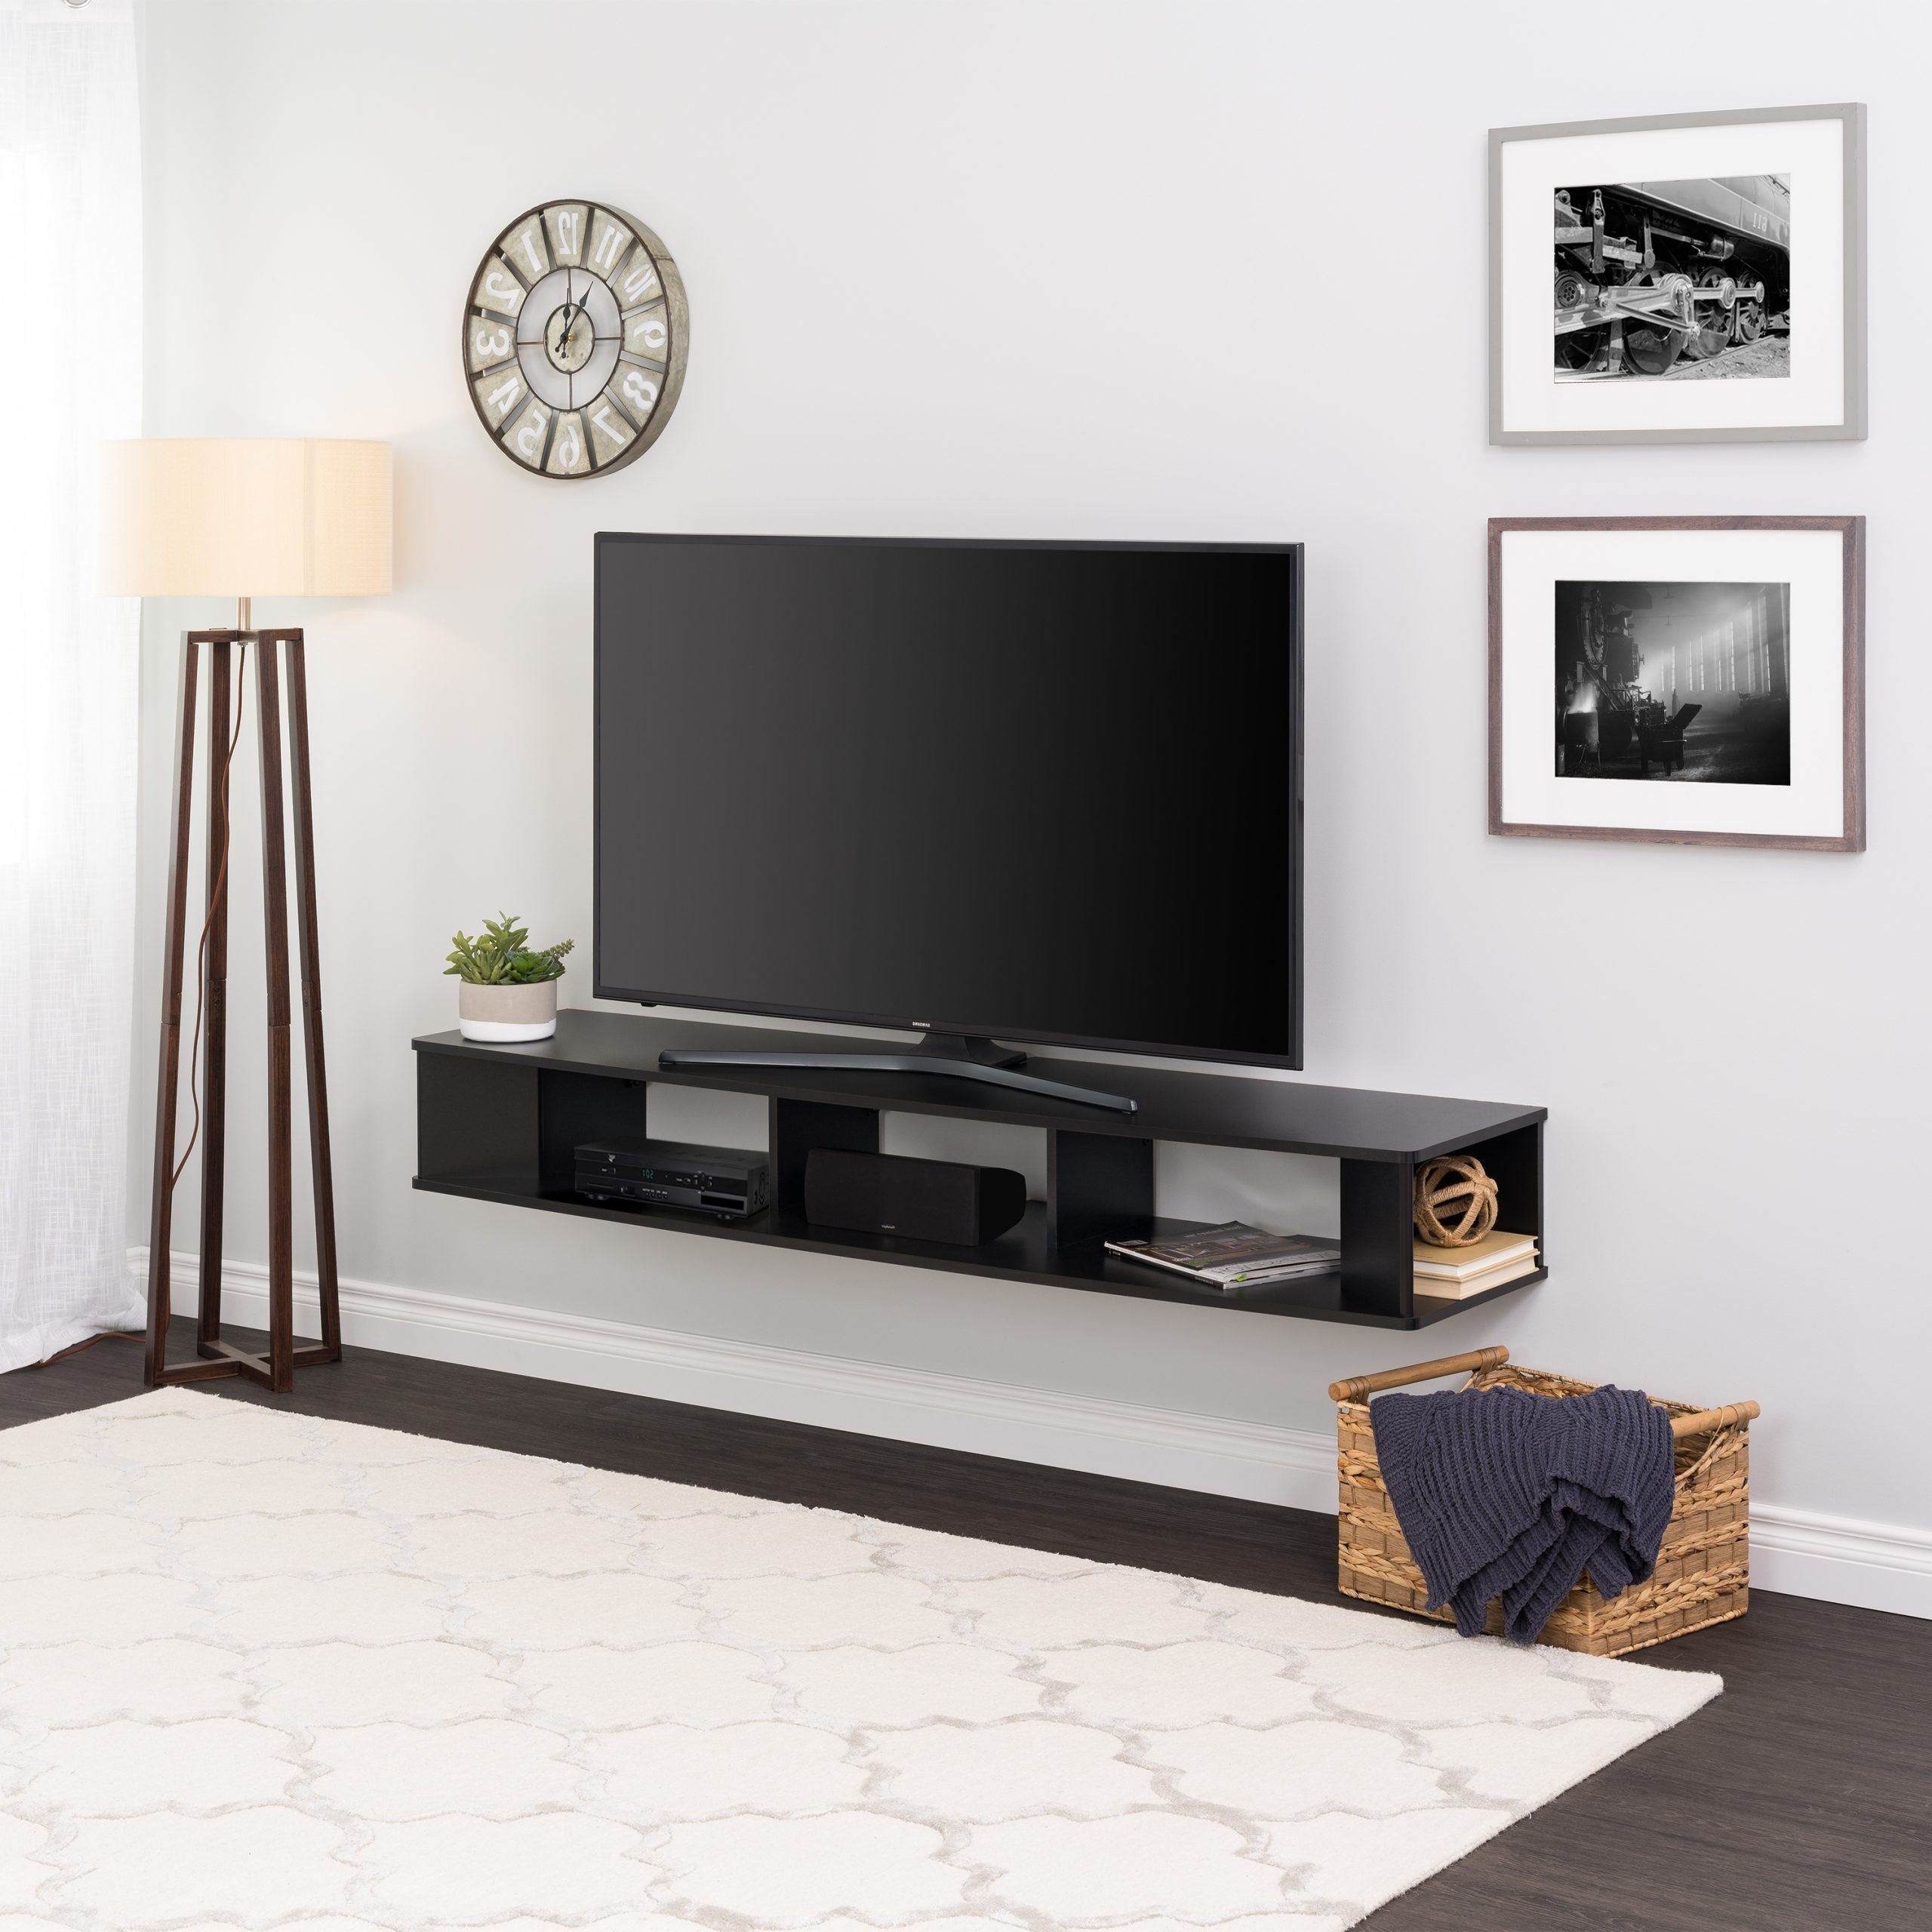 Most Recently Released Prepac 70 Inch Wide Wall Mounted Tv Stand, Black – Walmart With Regard To Greenwich Wide Tv Stands (View 9 of 10)